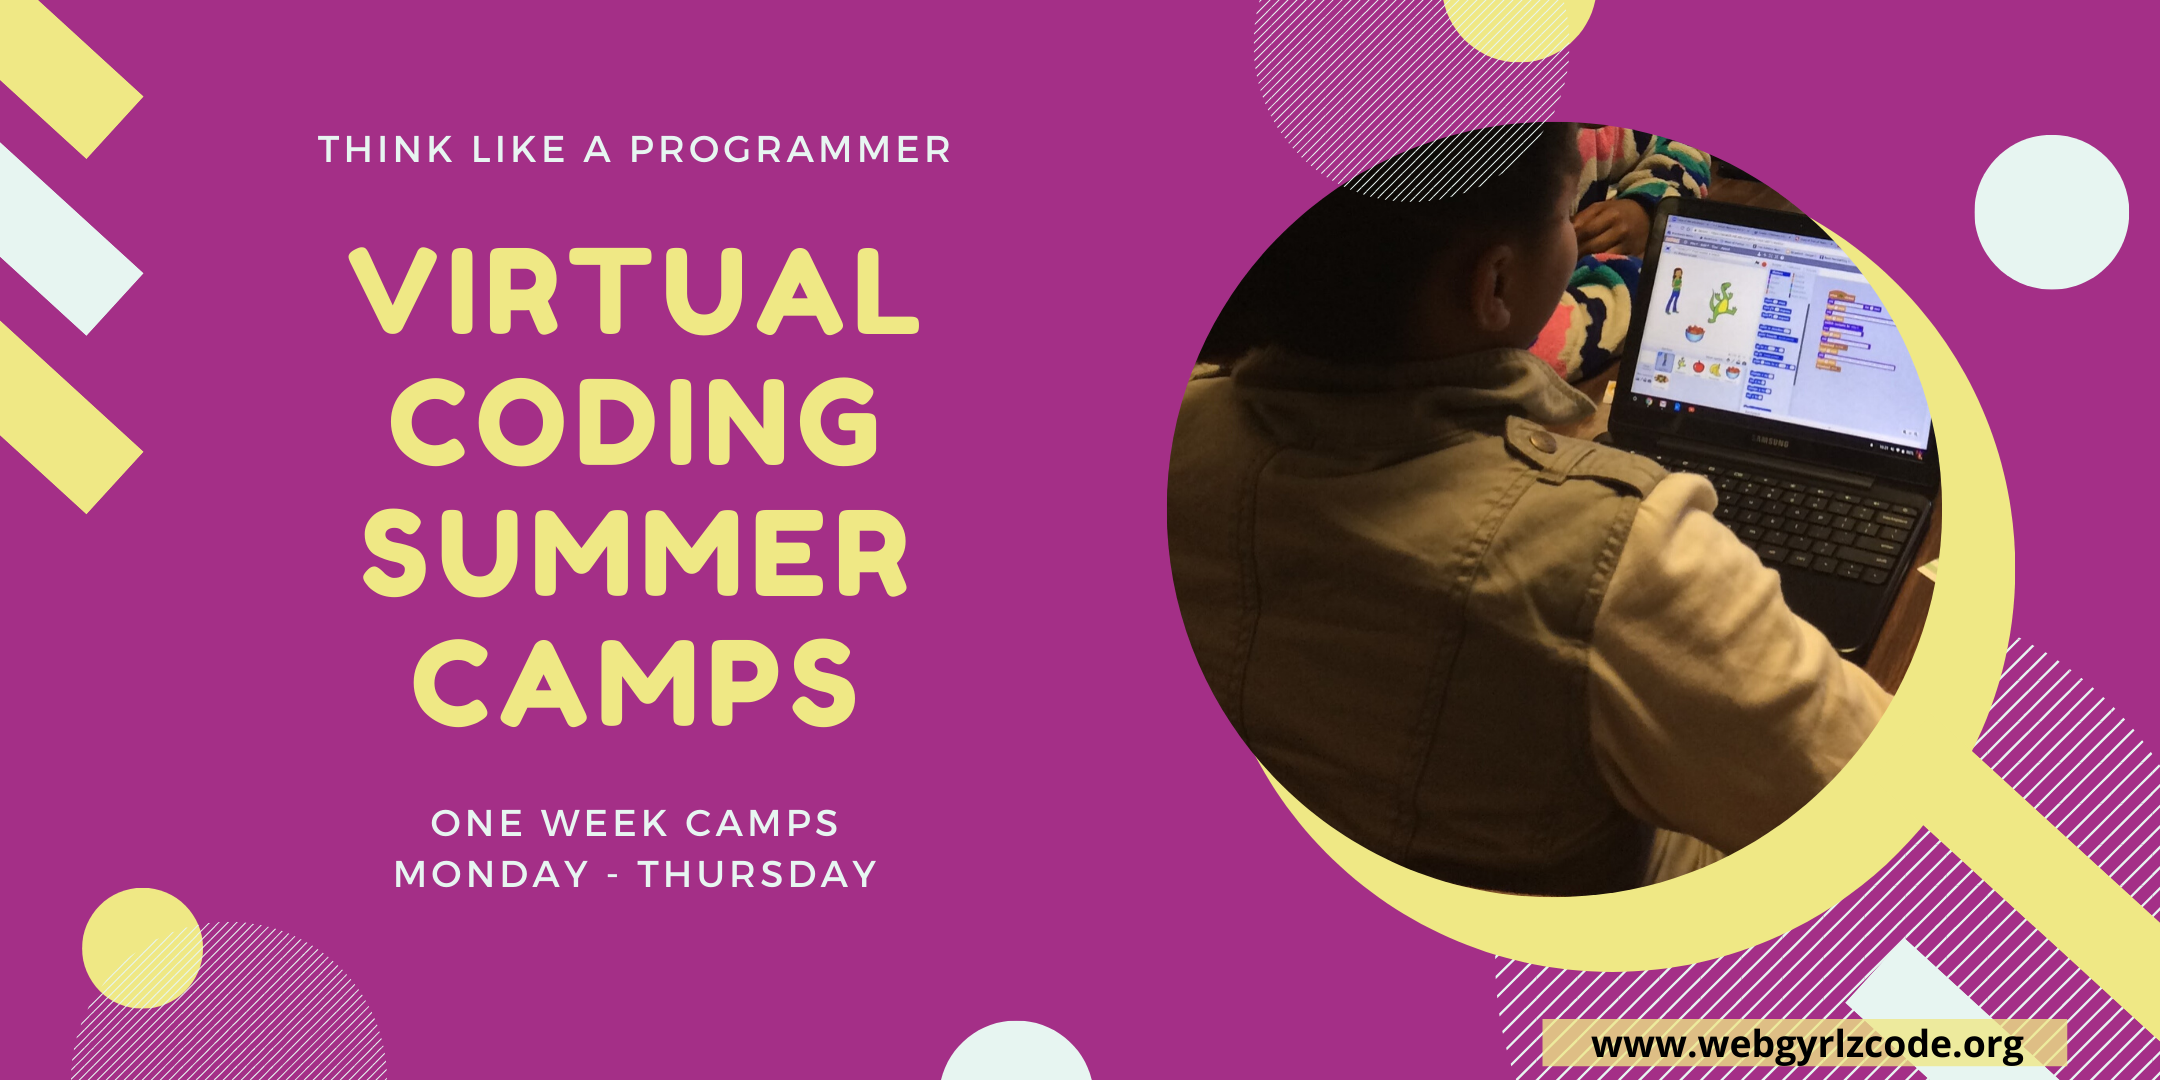 Virtual Coding Summer Camps for Kids